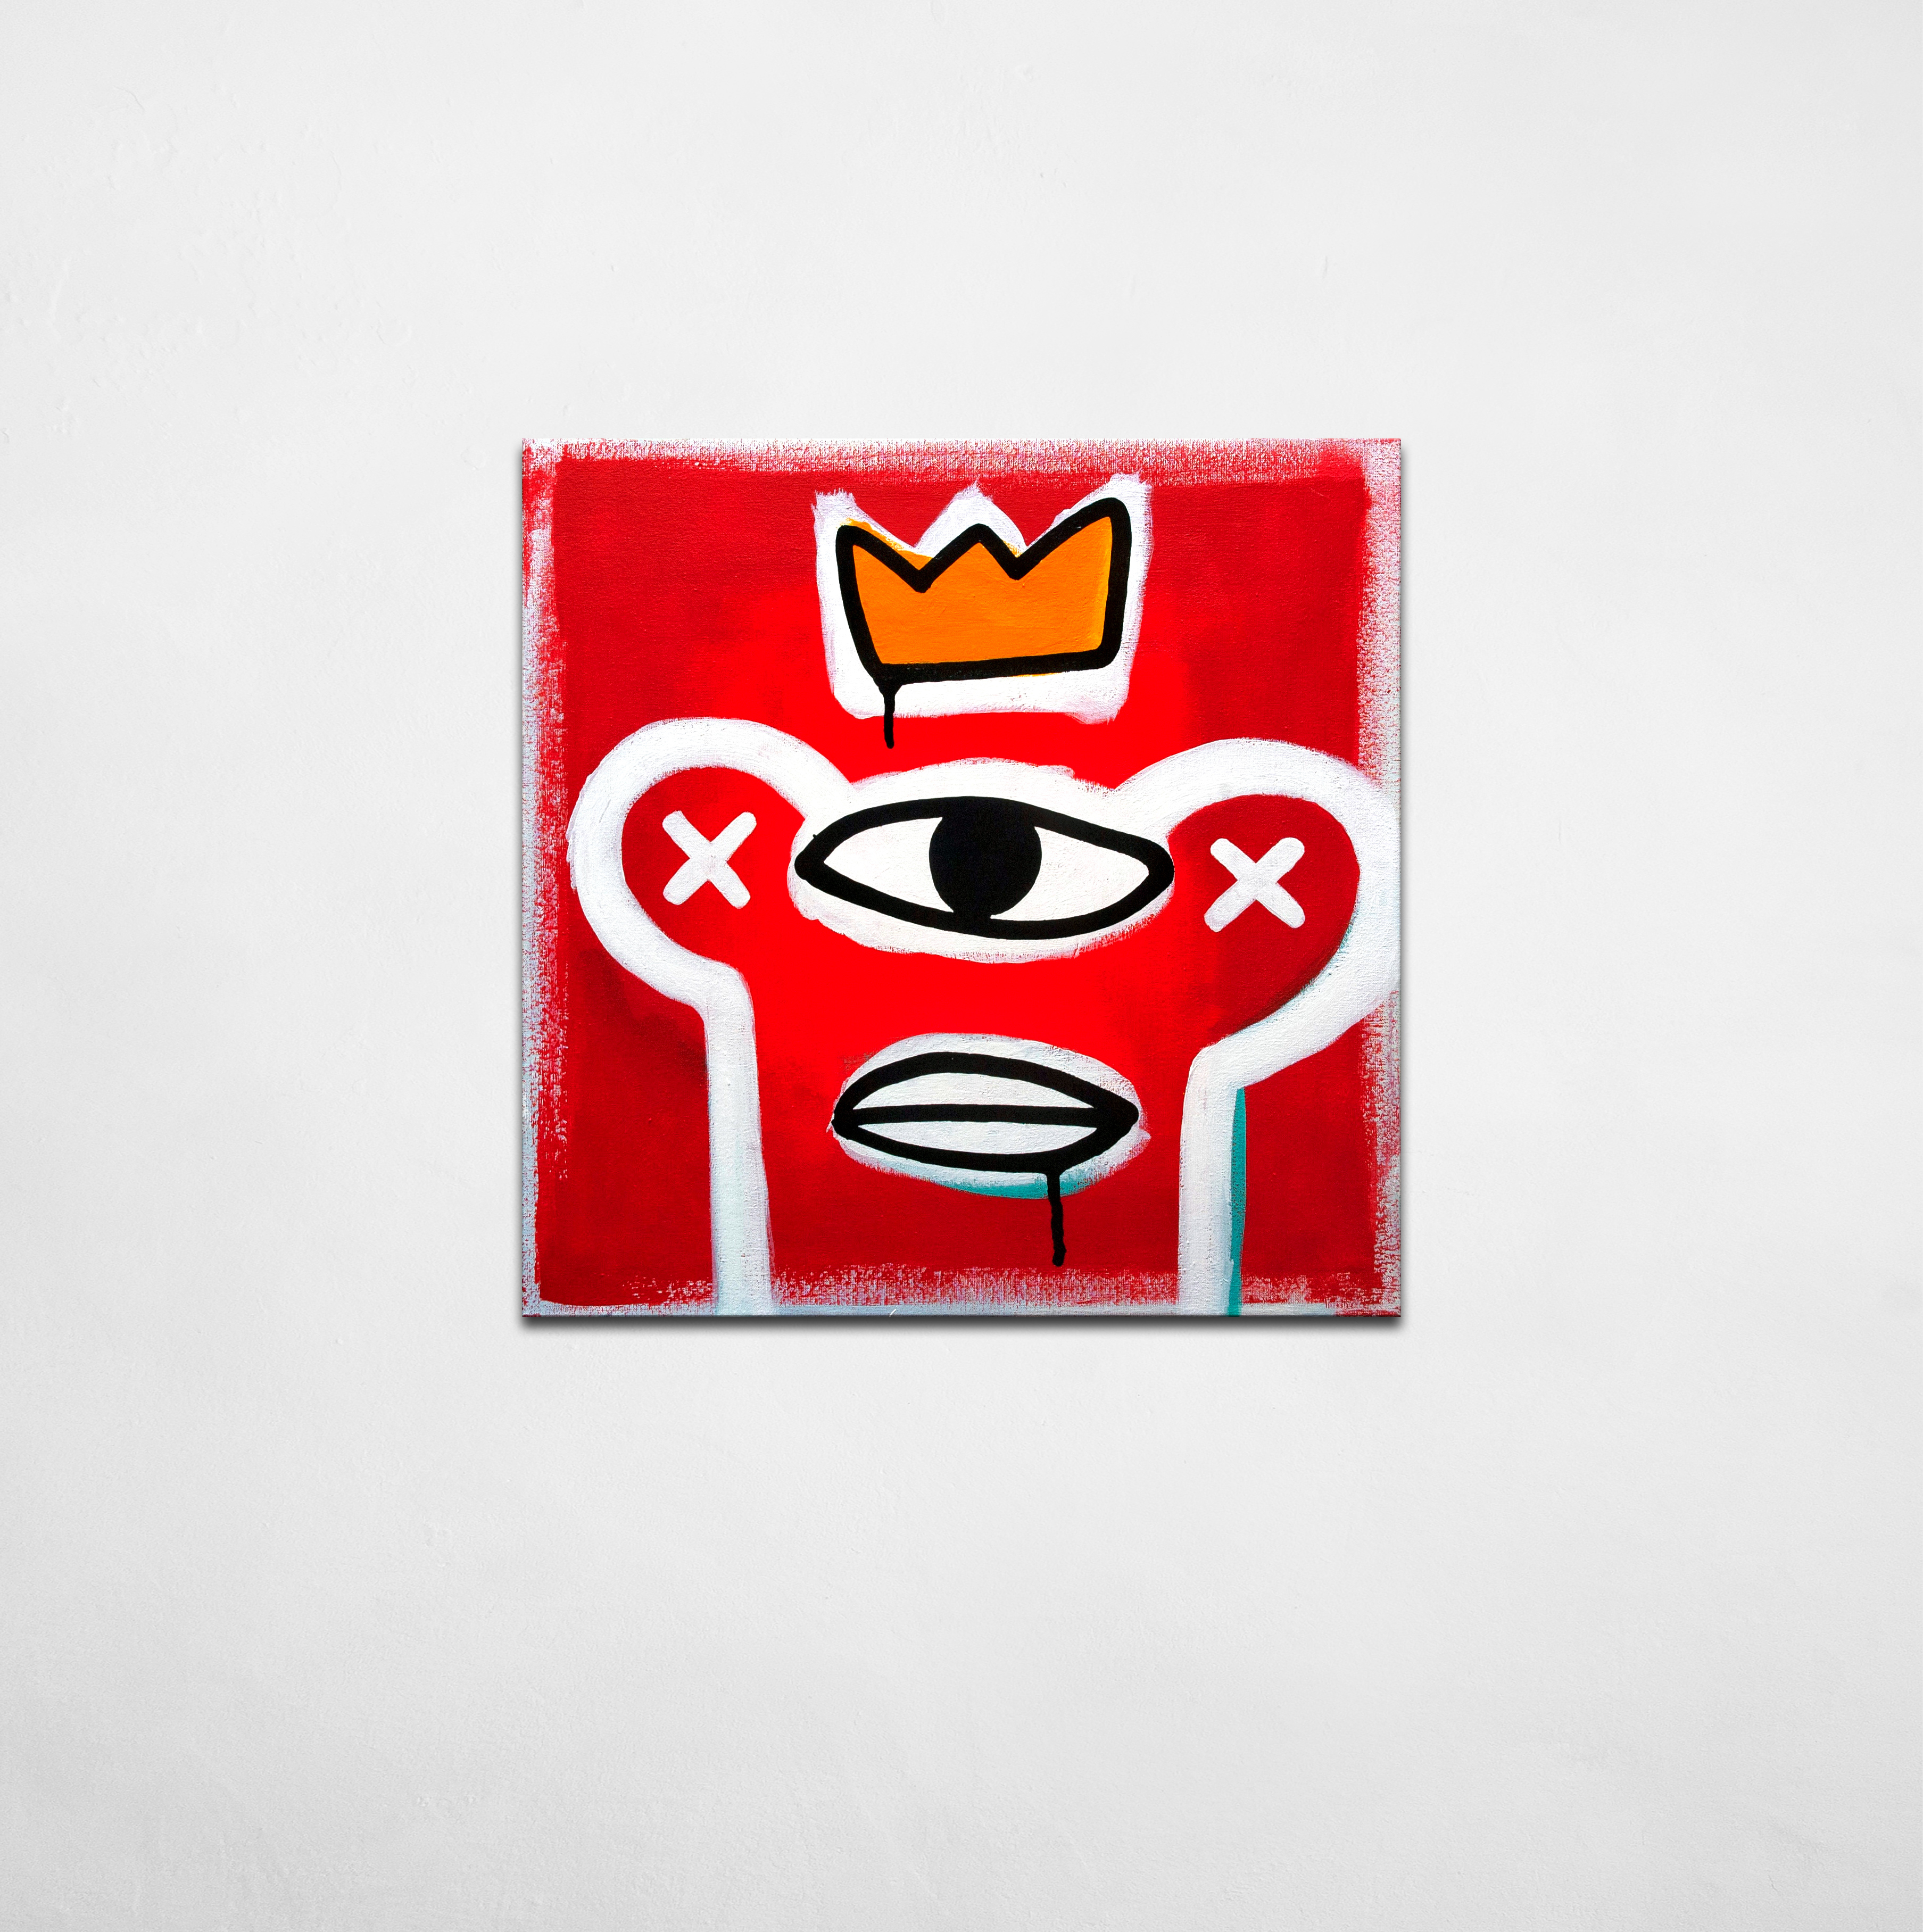 Knowledge Confidence Stone - contemporary artwork - monster in crown with one big eye on red background